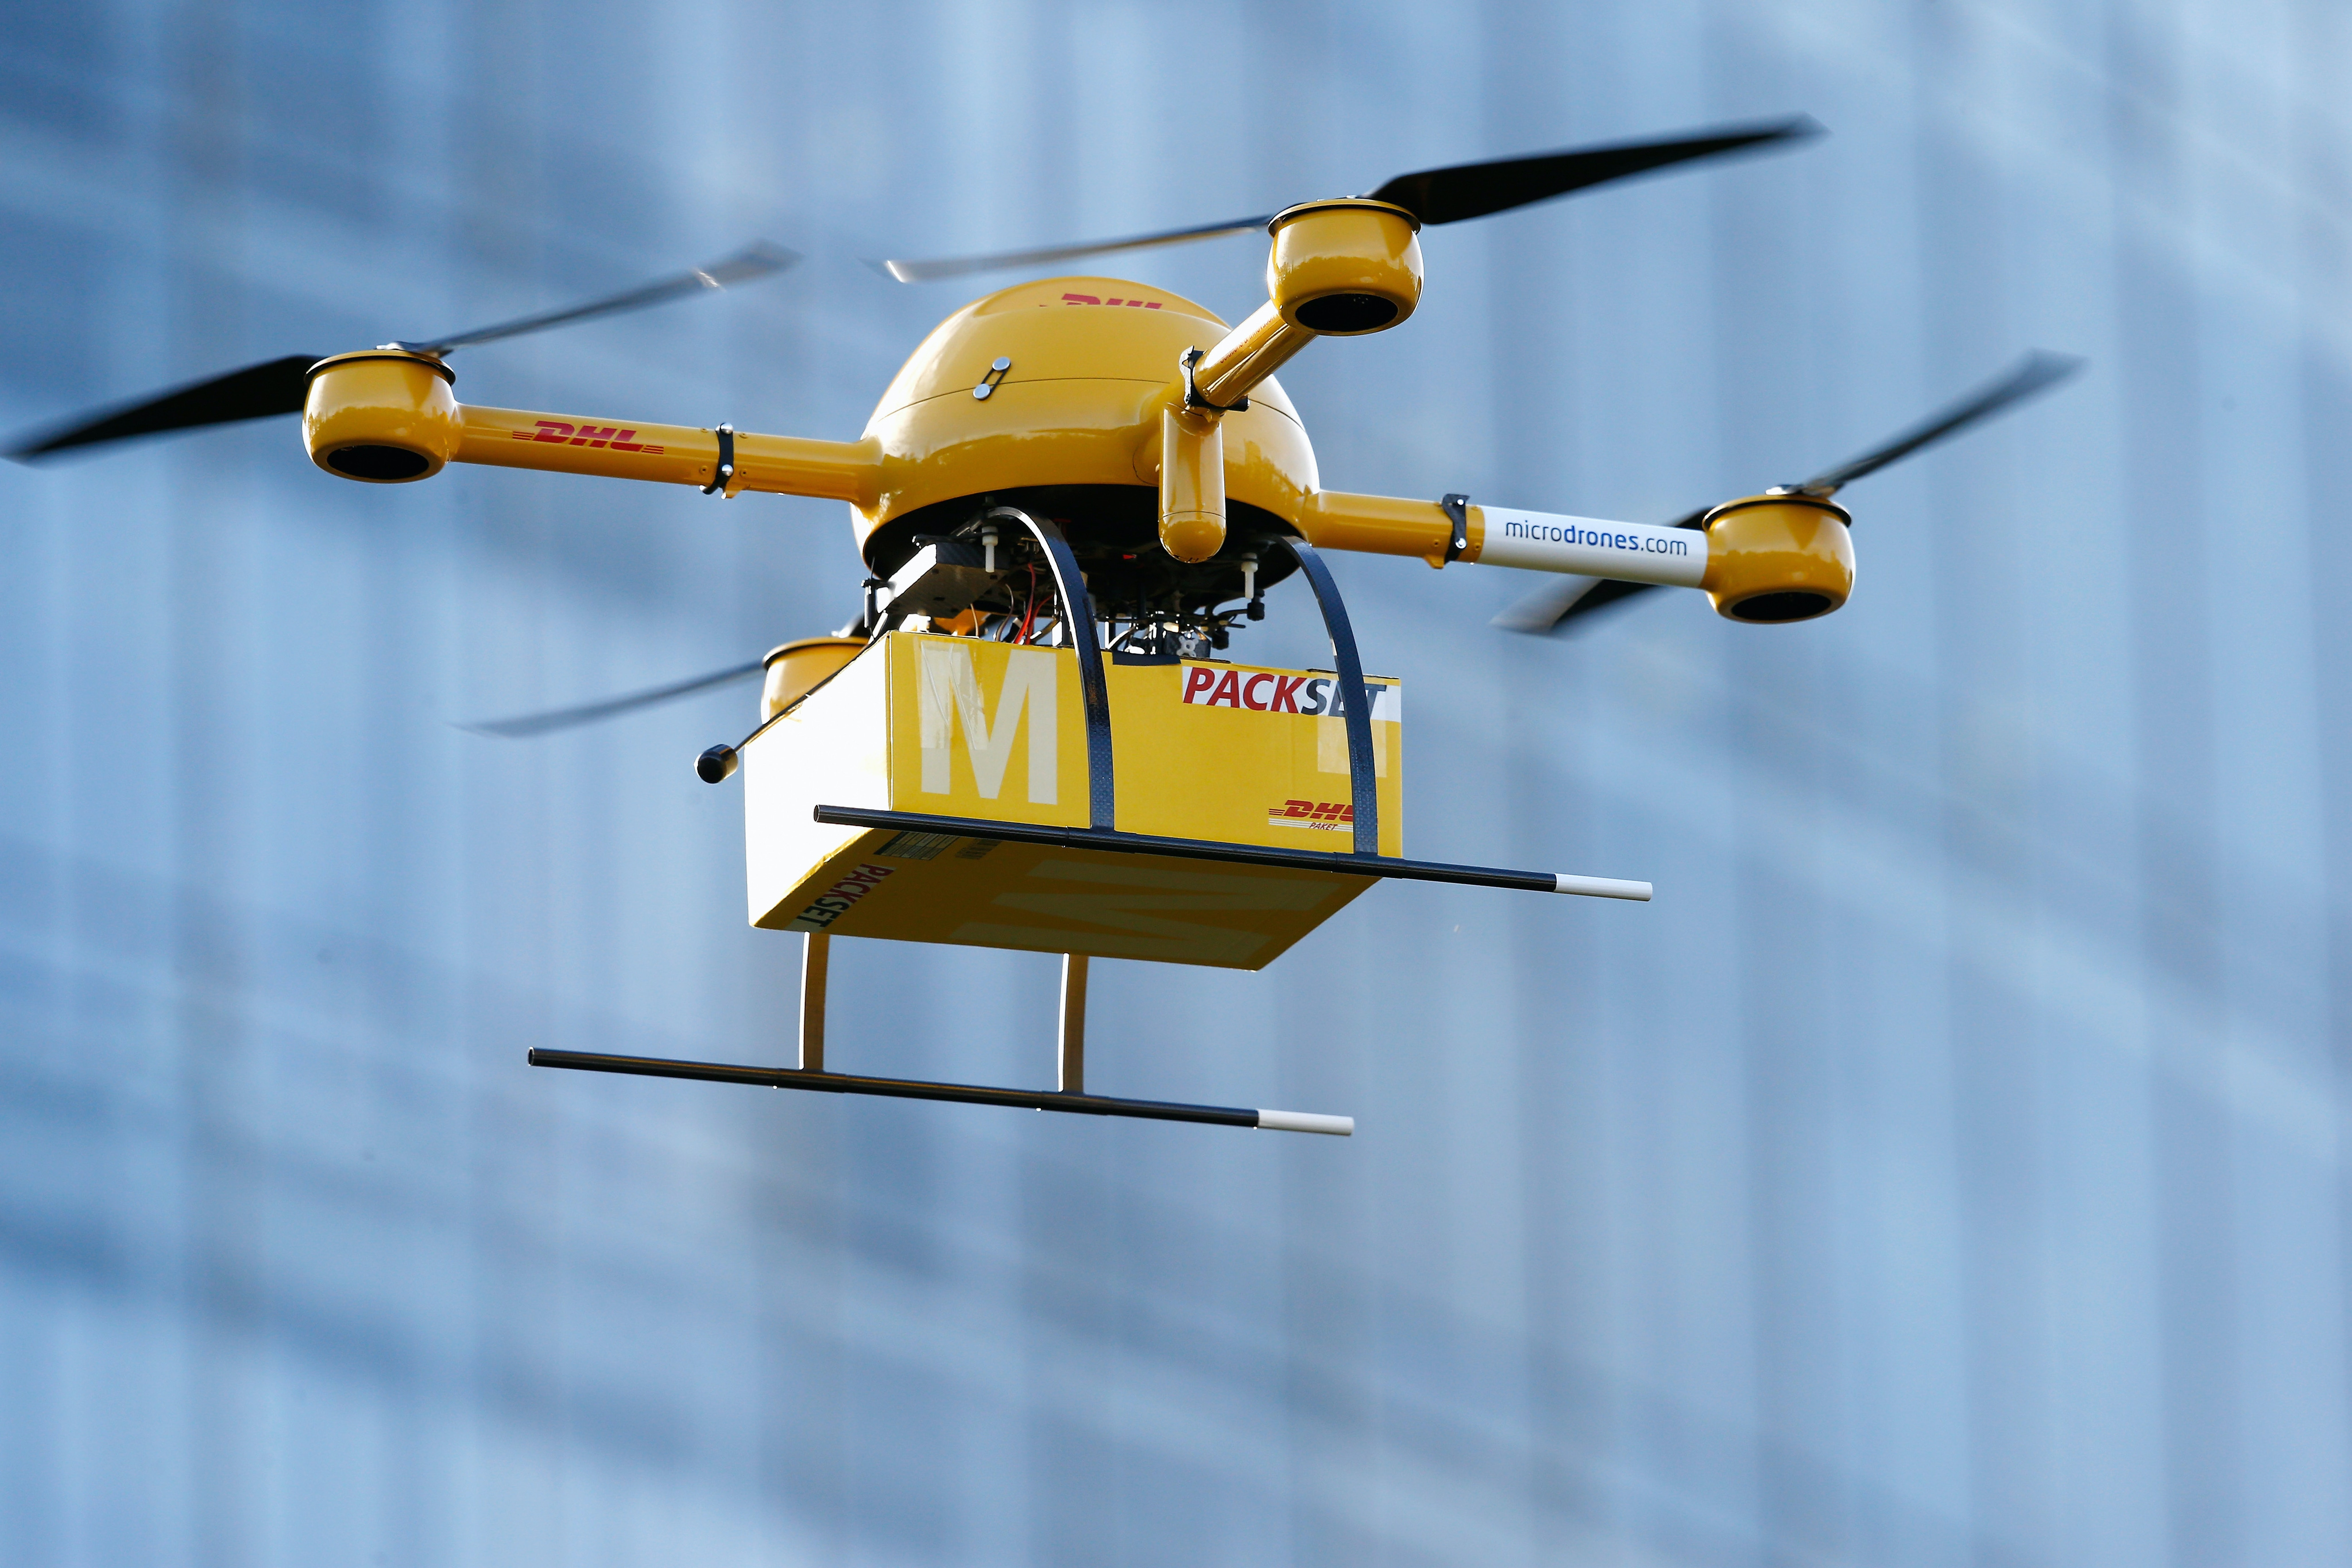 A quadcopter drone arrives with a small delivery at Deutsche Post headquarters on December 9, 2013 in Bonn, Germany.